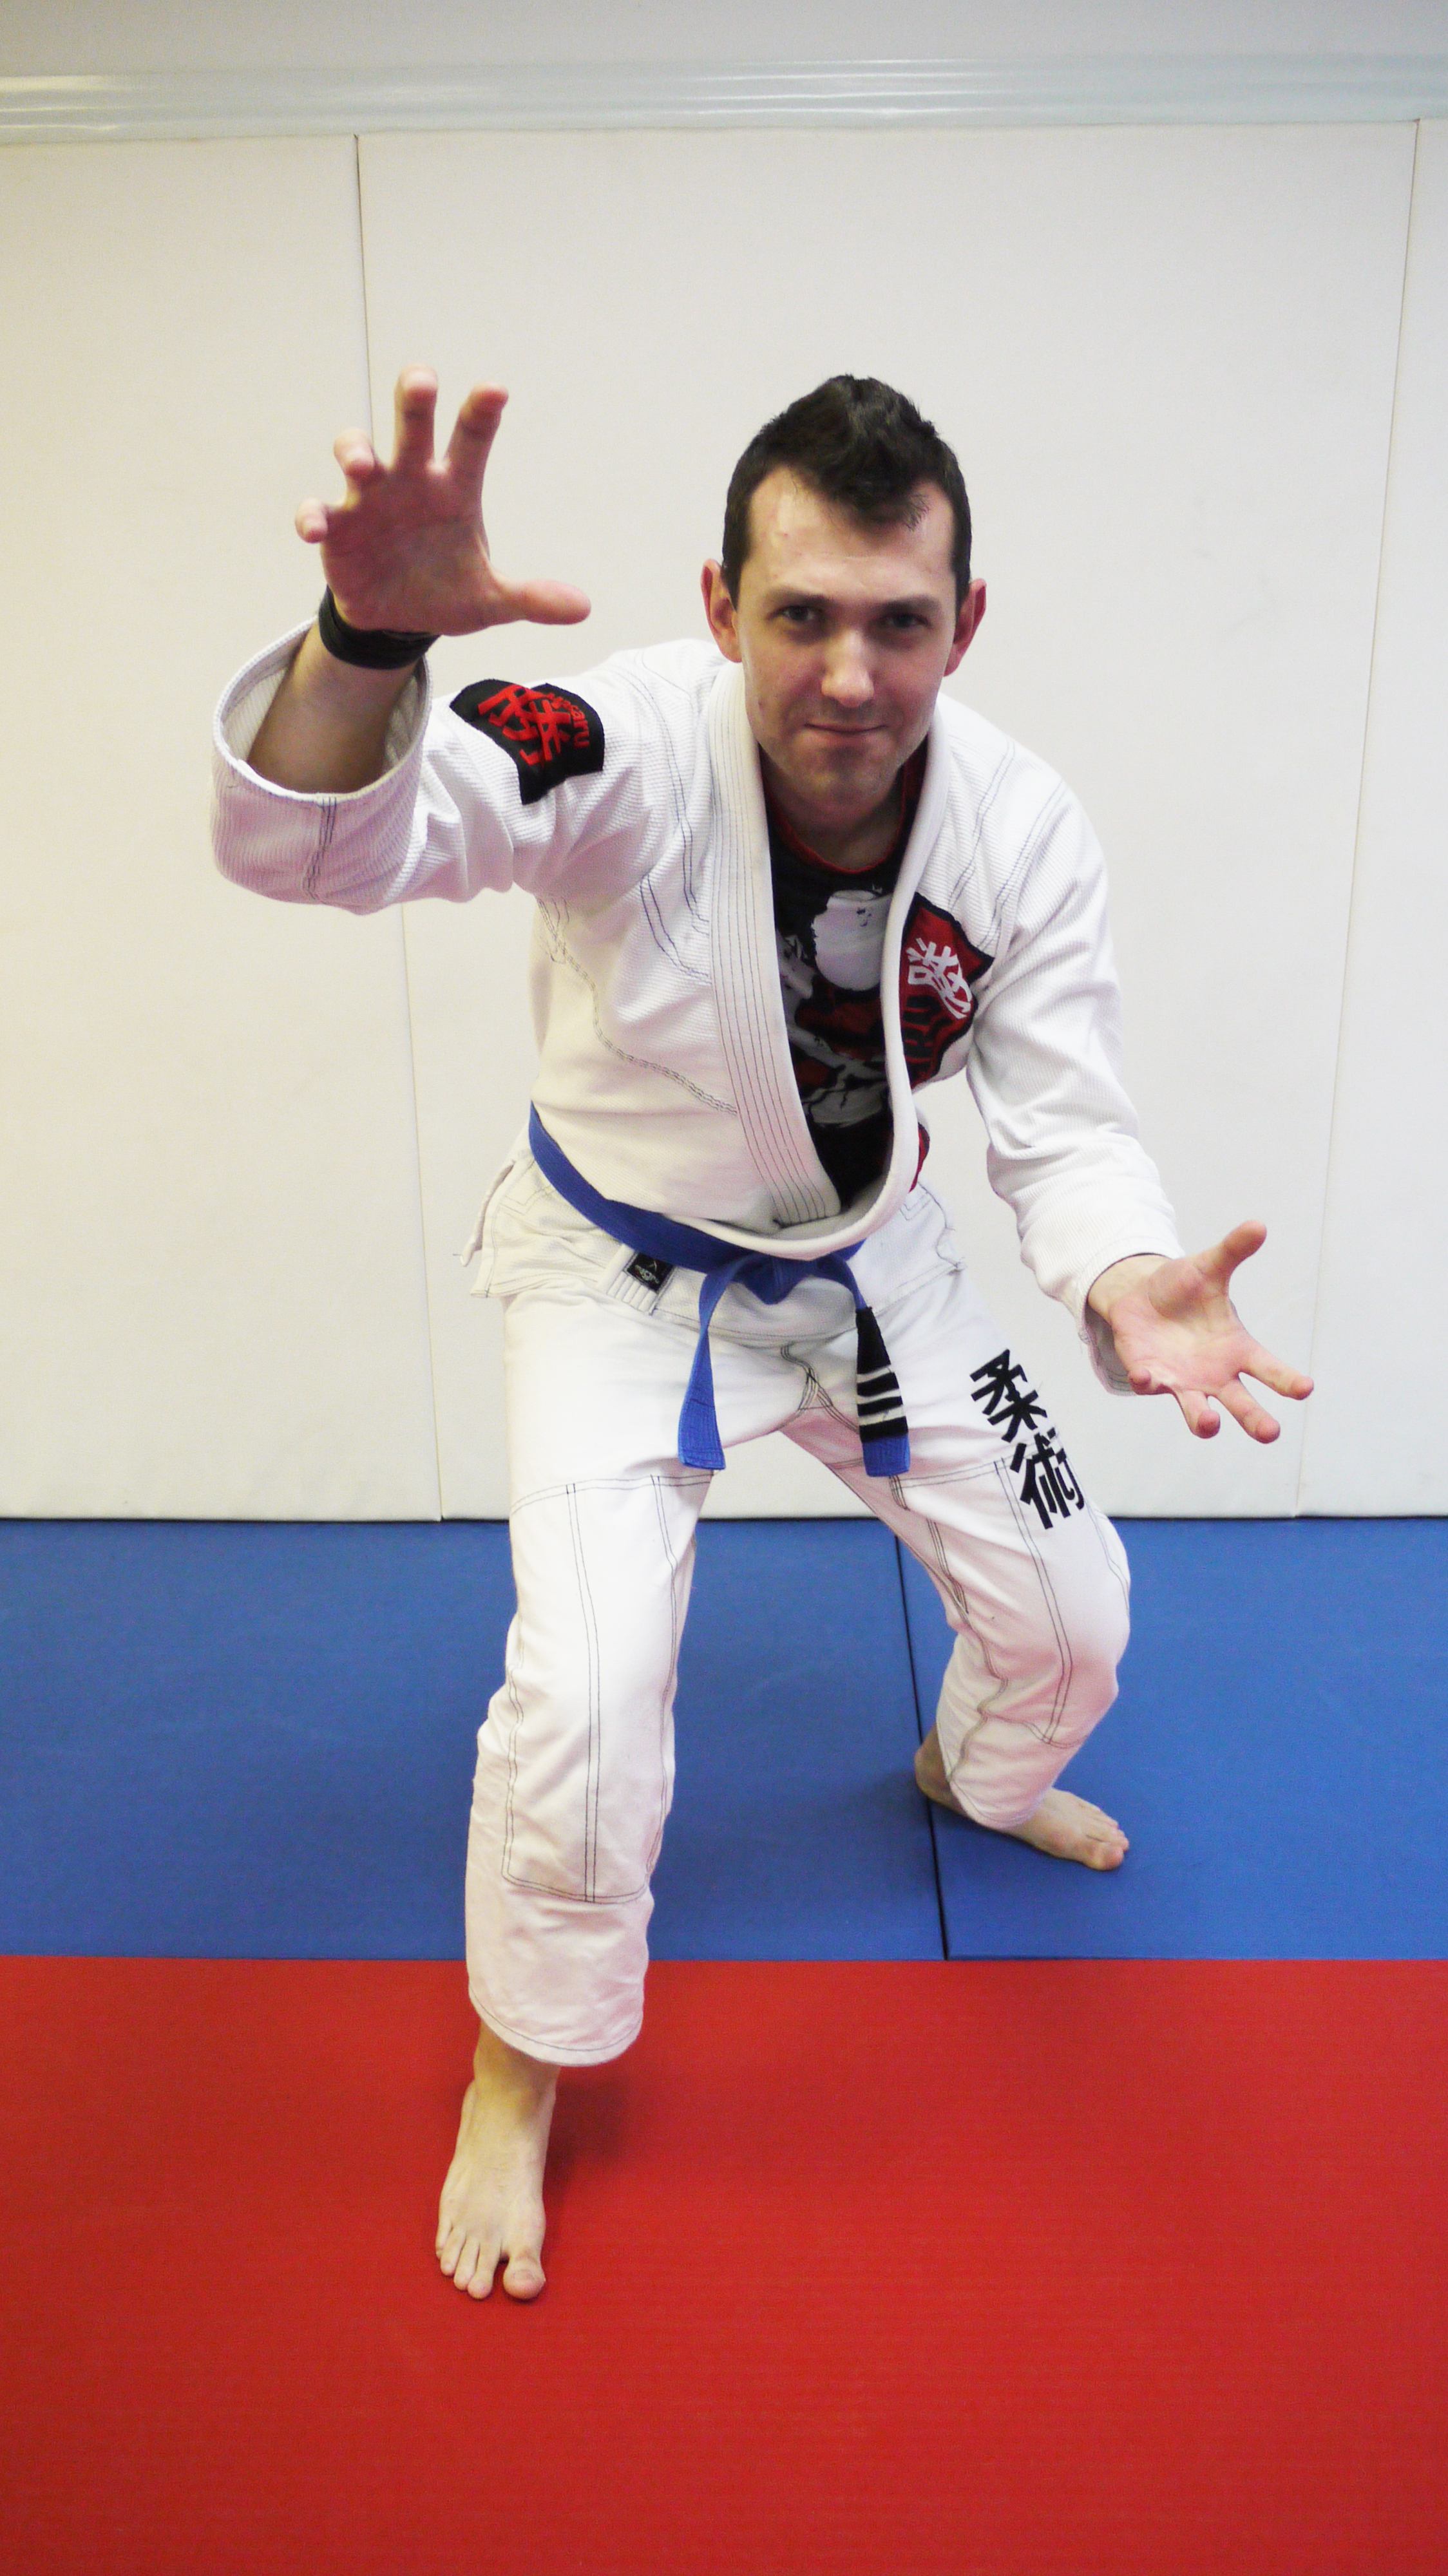 Cardio for a BJJ Athlete | BJJ in North Edmonton